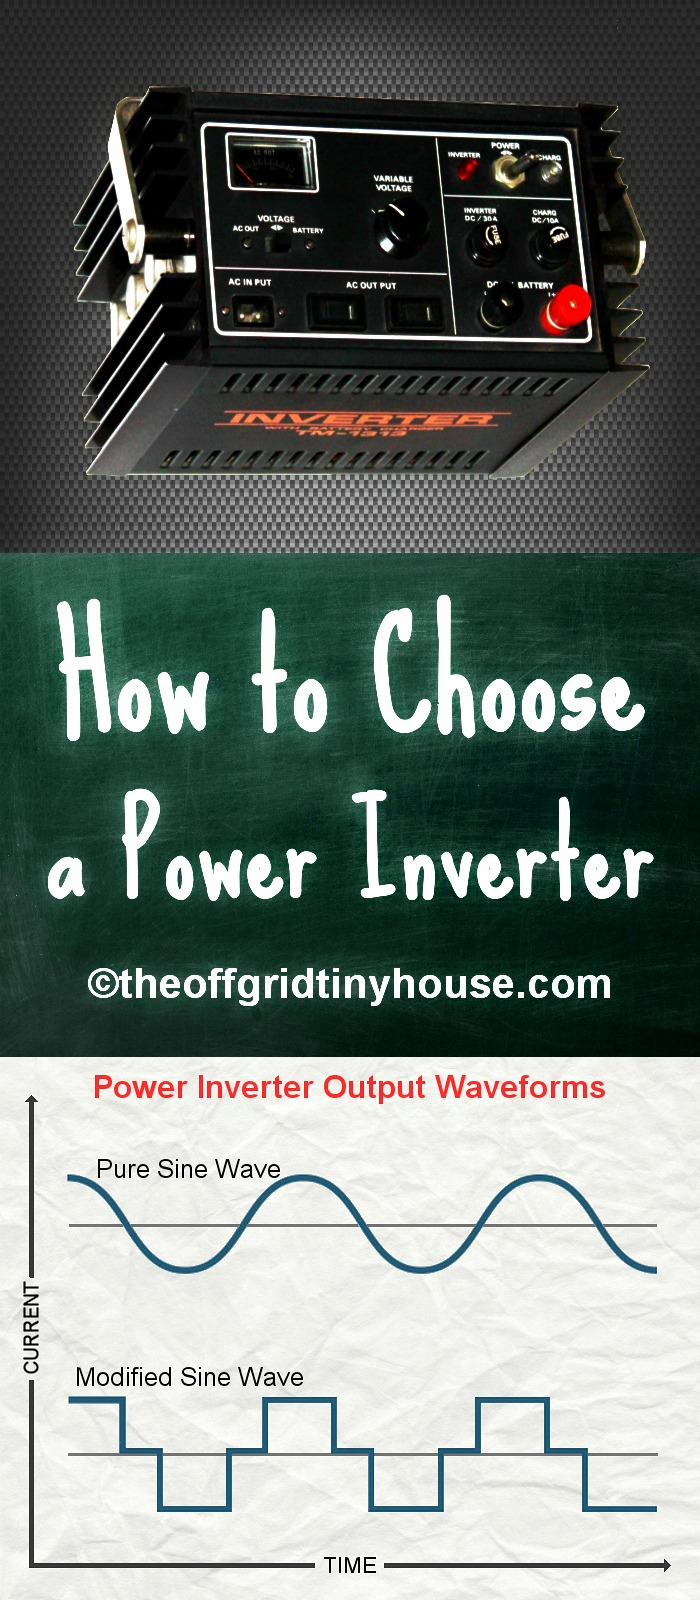 How to Choose a Power Inverter. #Inverters are needed to convert DC power into the AC power needed to run household appliances. To choose the best #powerinverter for you DC #batterybank and #electrical system, you need know about the general features and settings of inverters as well as the differences between #ModifiedSineWave and #PureSineWave inverters. Click through to learn what you need for choosing your power #inverter.